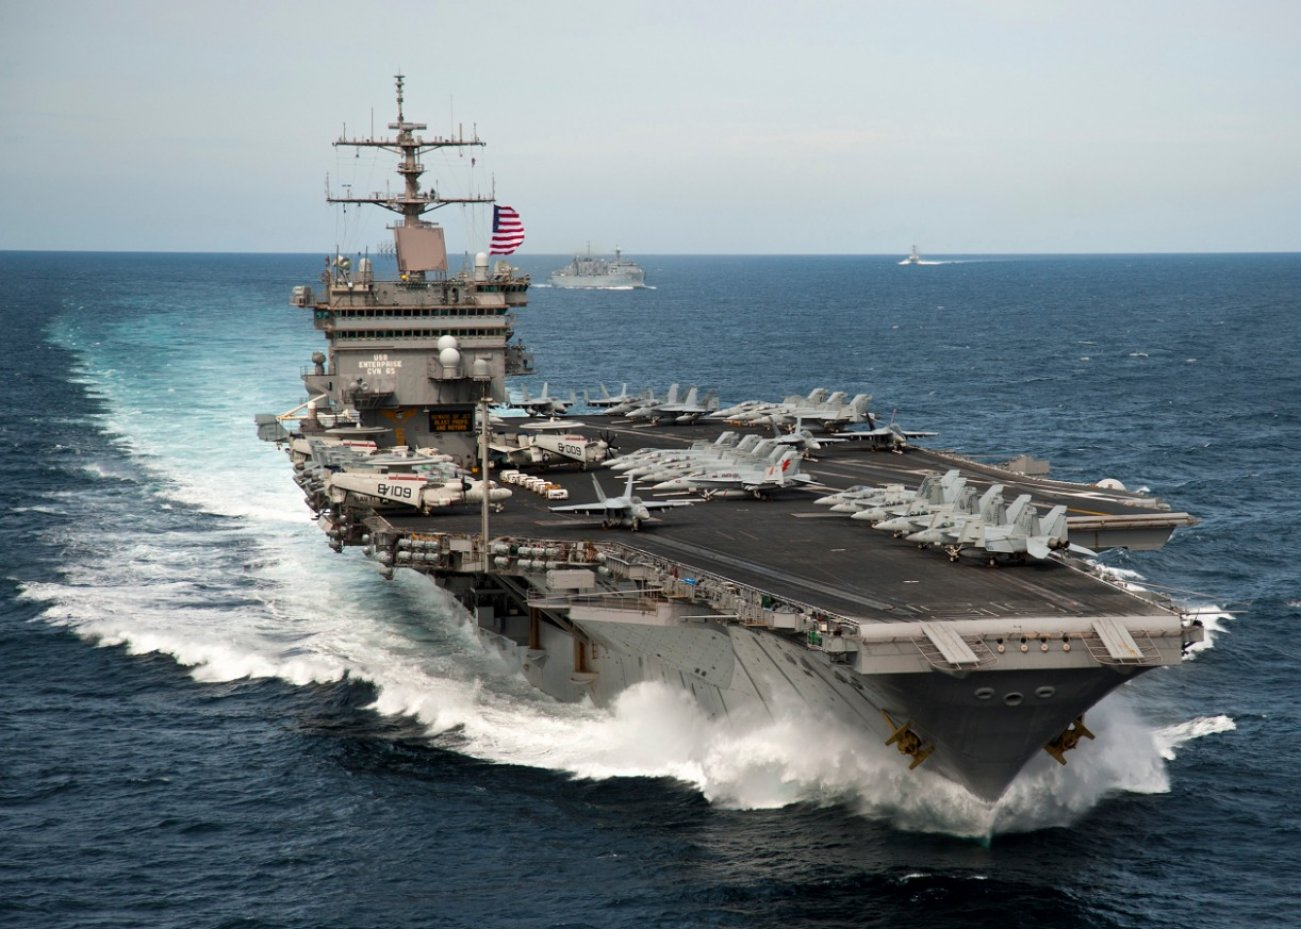 How to Sink a U.S. Navy Aircraft Carrier? This One Rocket Nearly Did the Trick